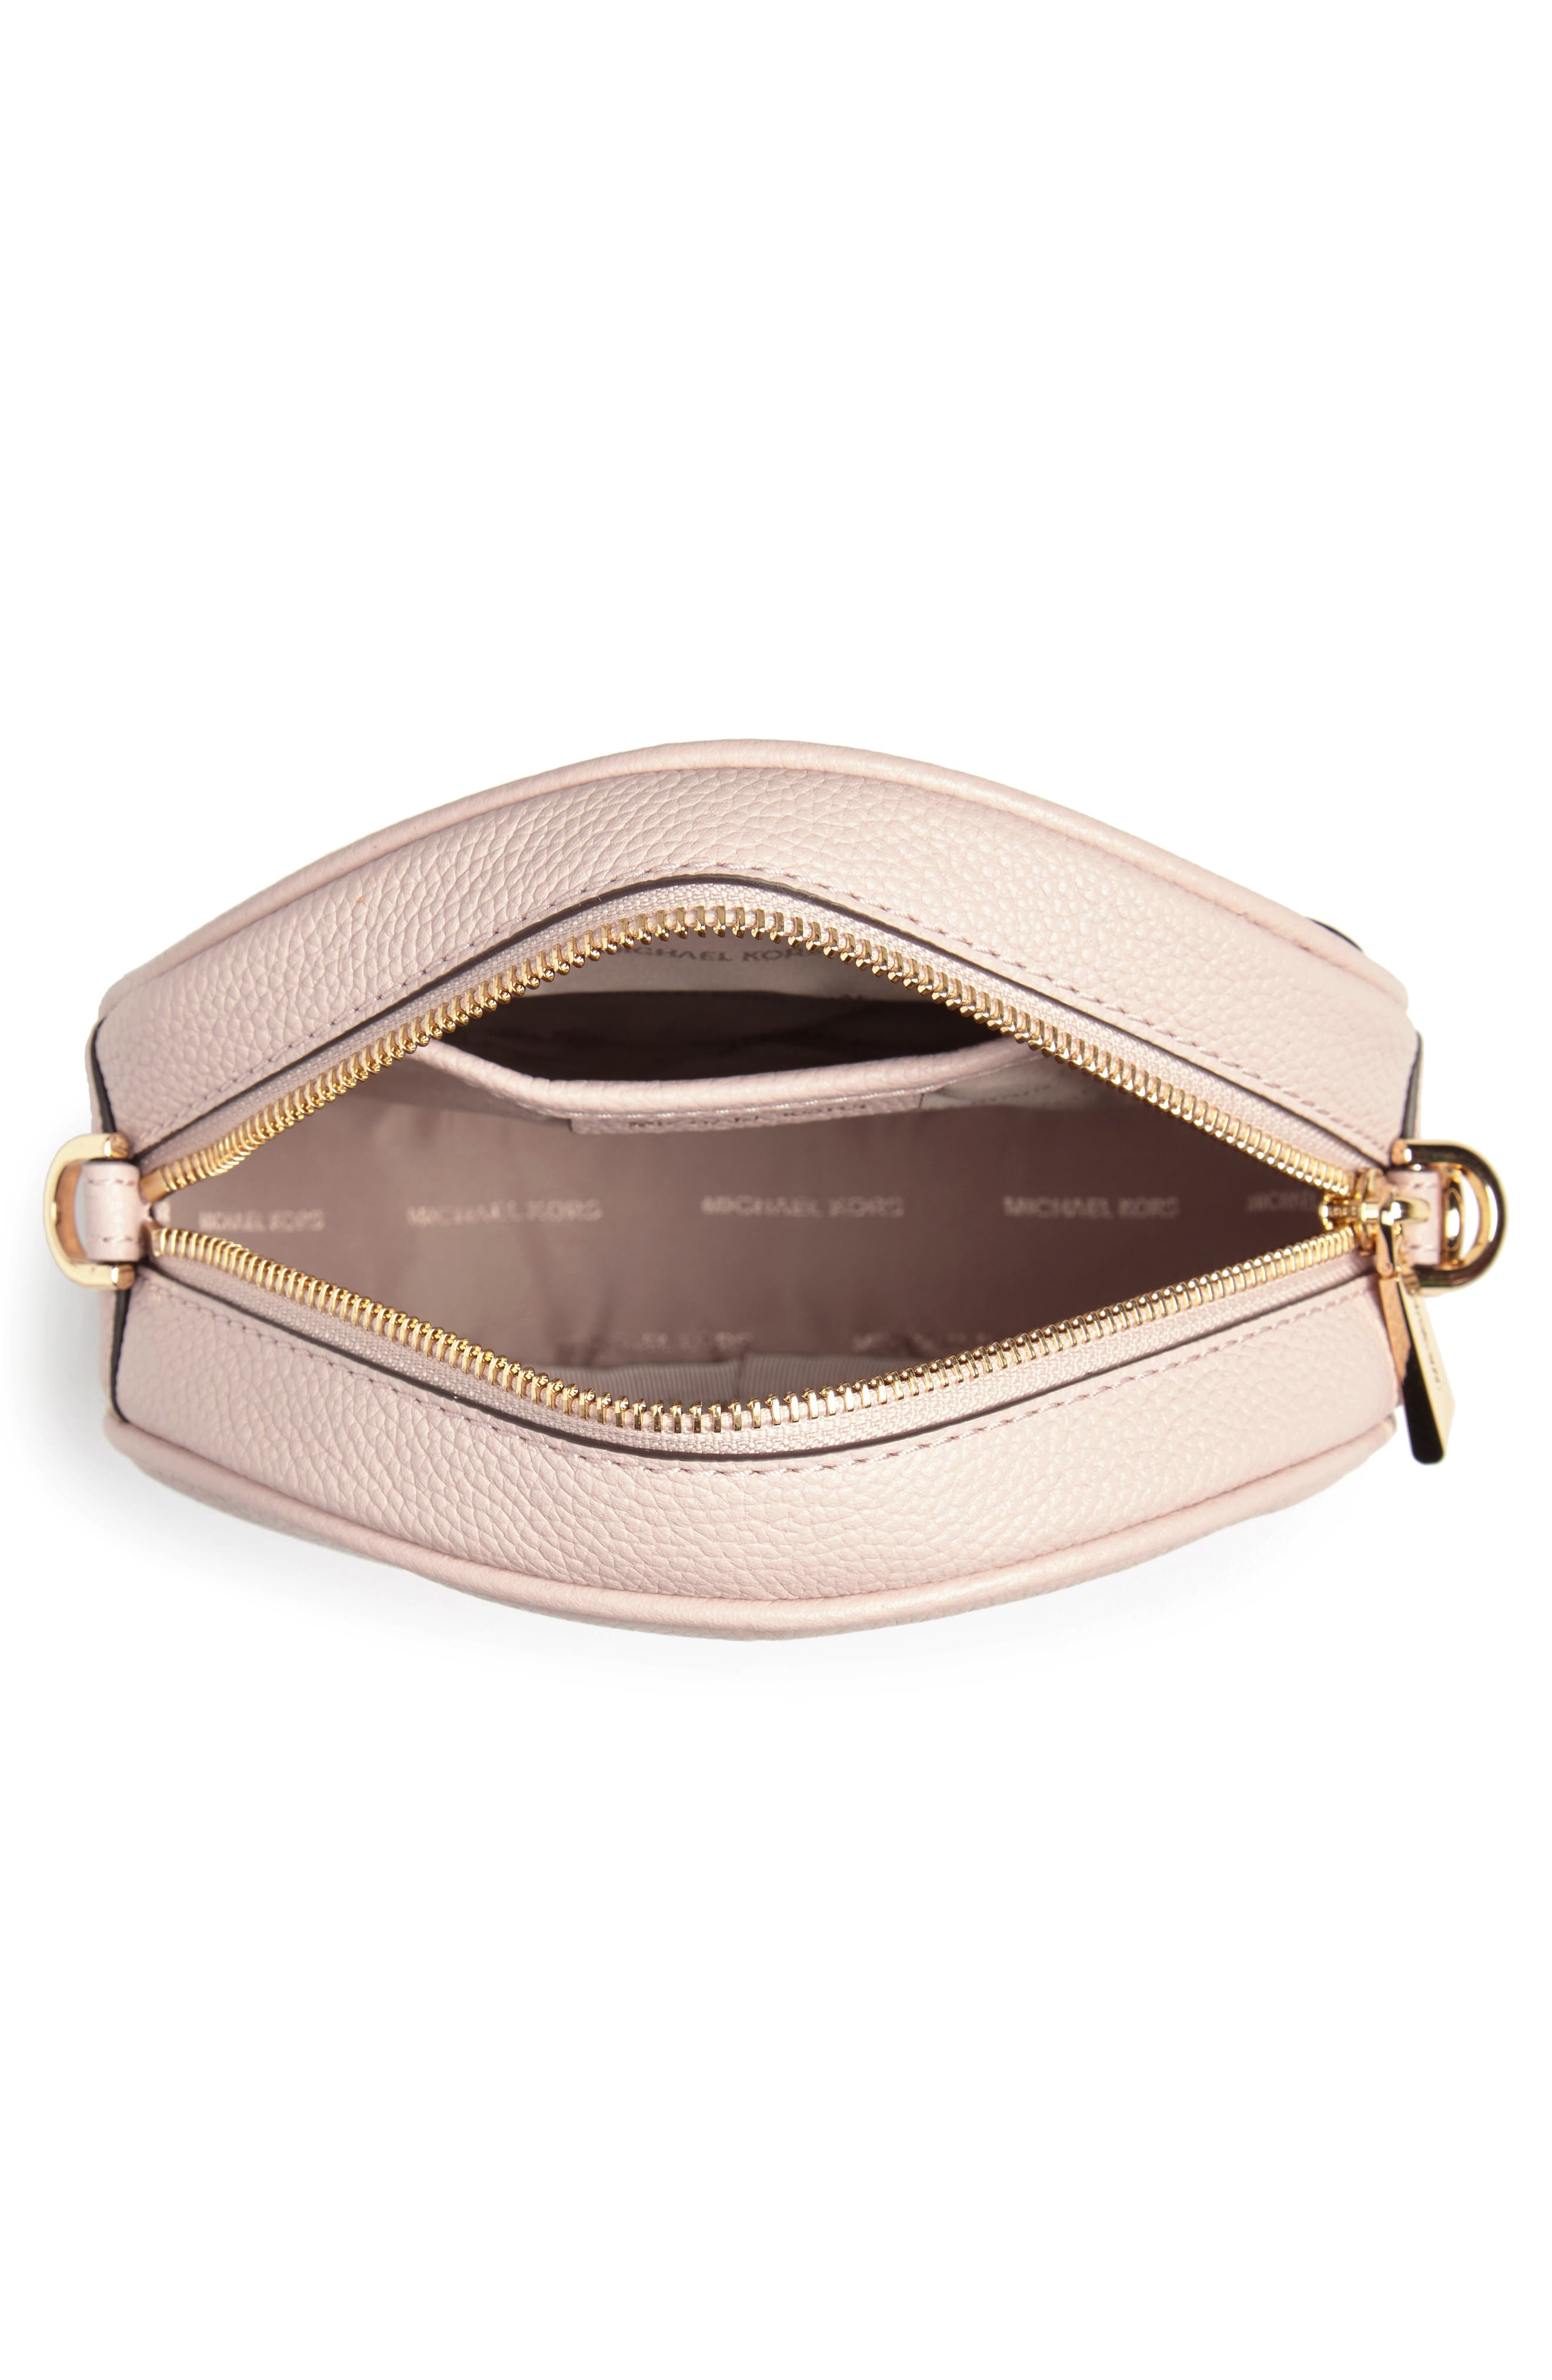 Medium Leather Canteen Bag,                             Alternate thumbnail 4, color,                             Soft Pink